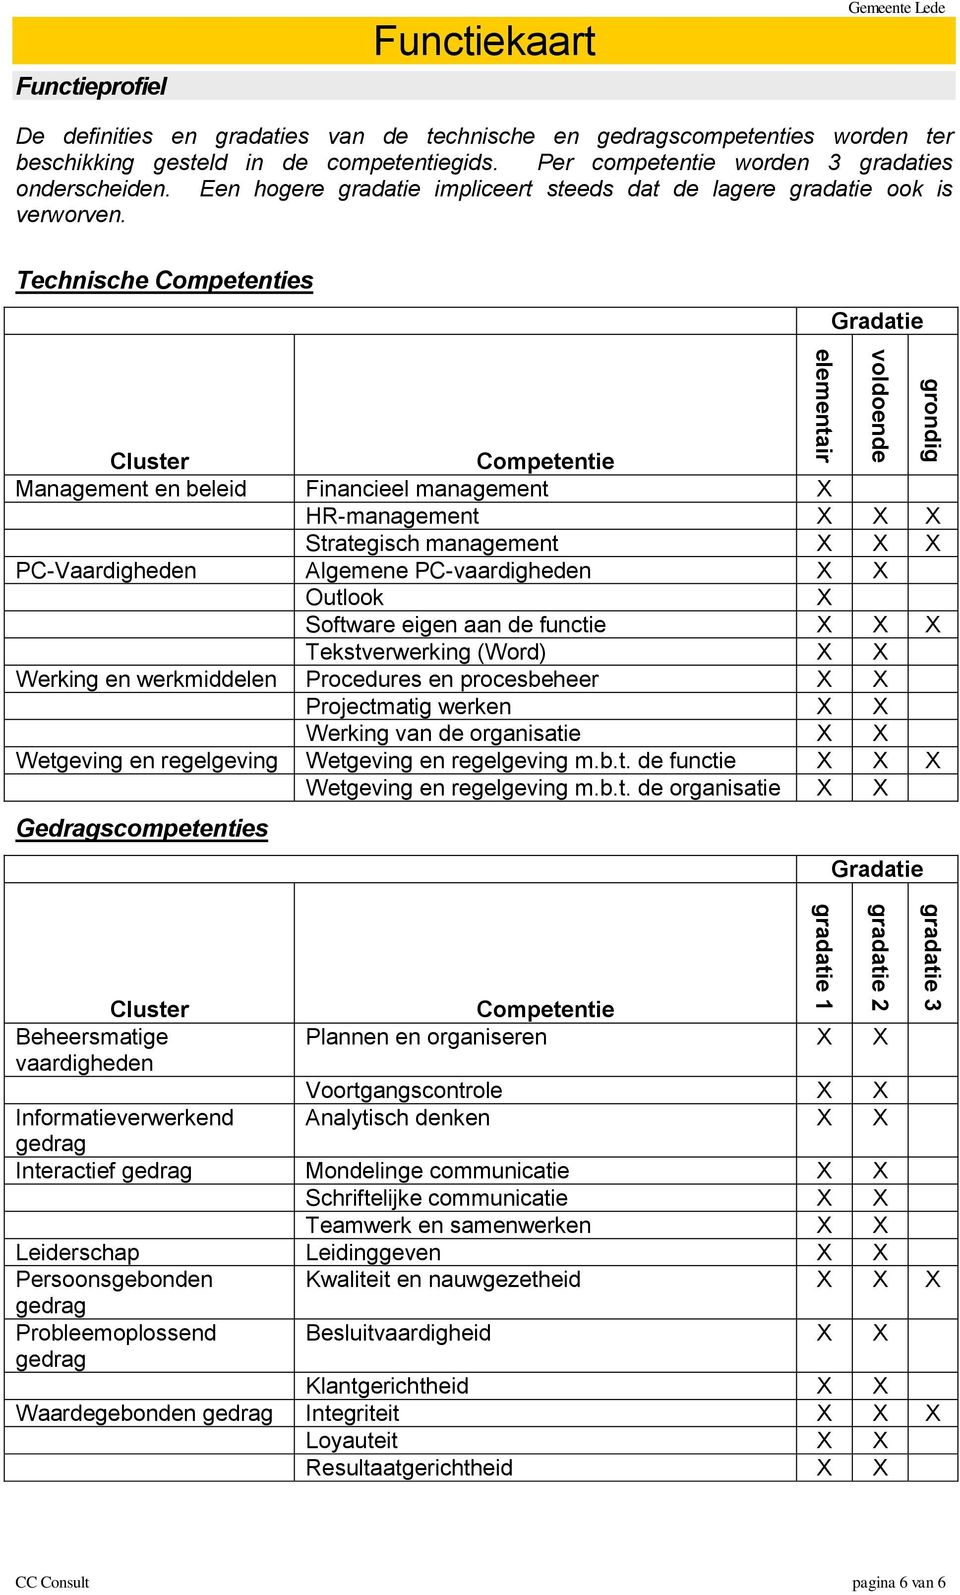 Technische Competenties Gradatie Cluster Competentie Management en beleid Financieel management X HR-management X X X Strategisch management X X X PC-Vaardigheden Algemene PC-vaardigheden X X Outlook